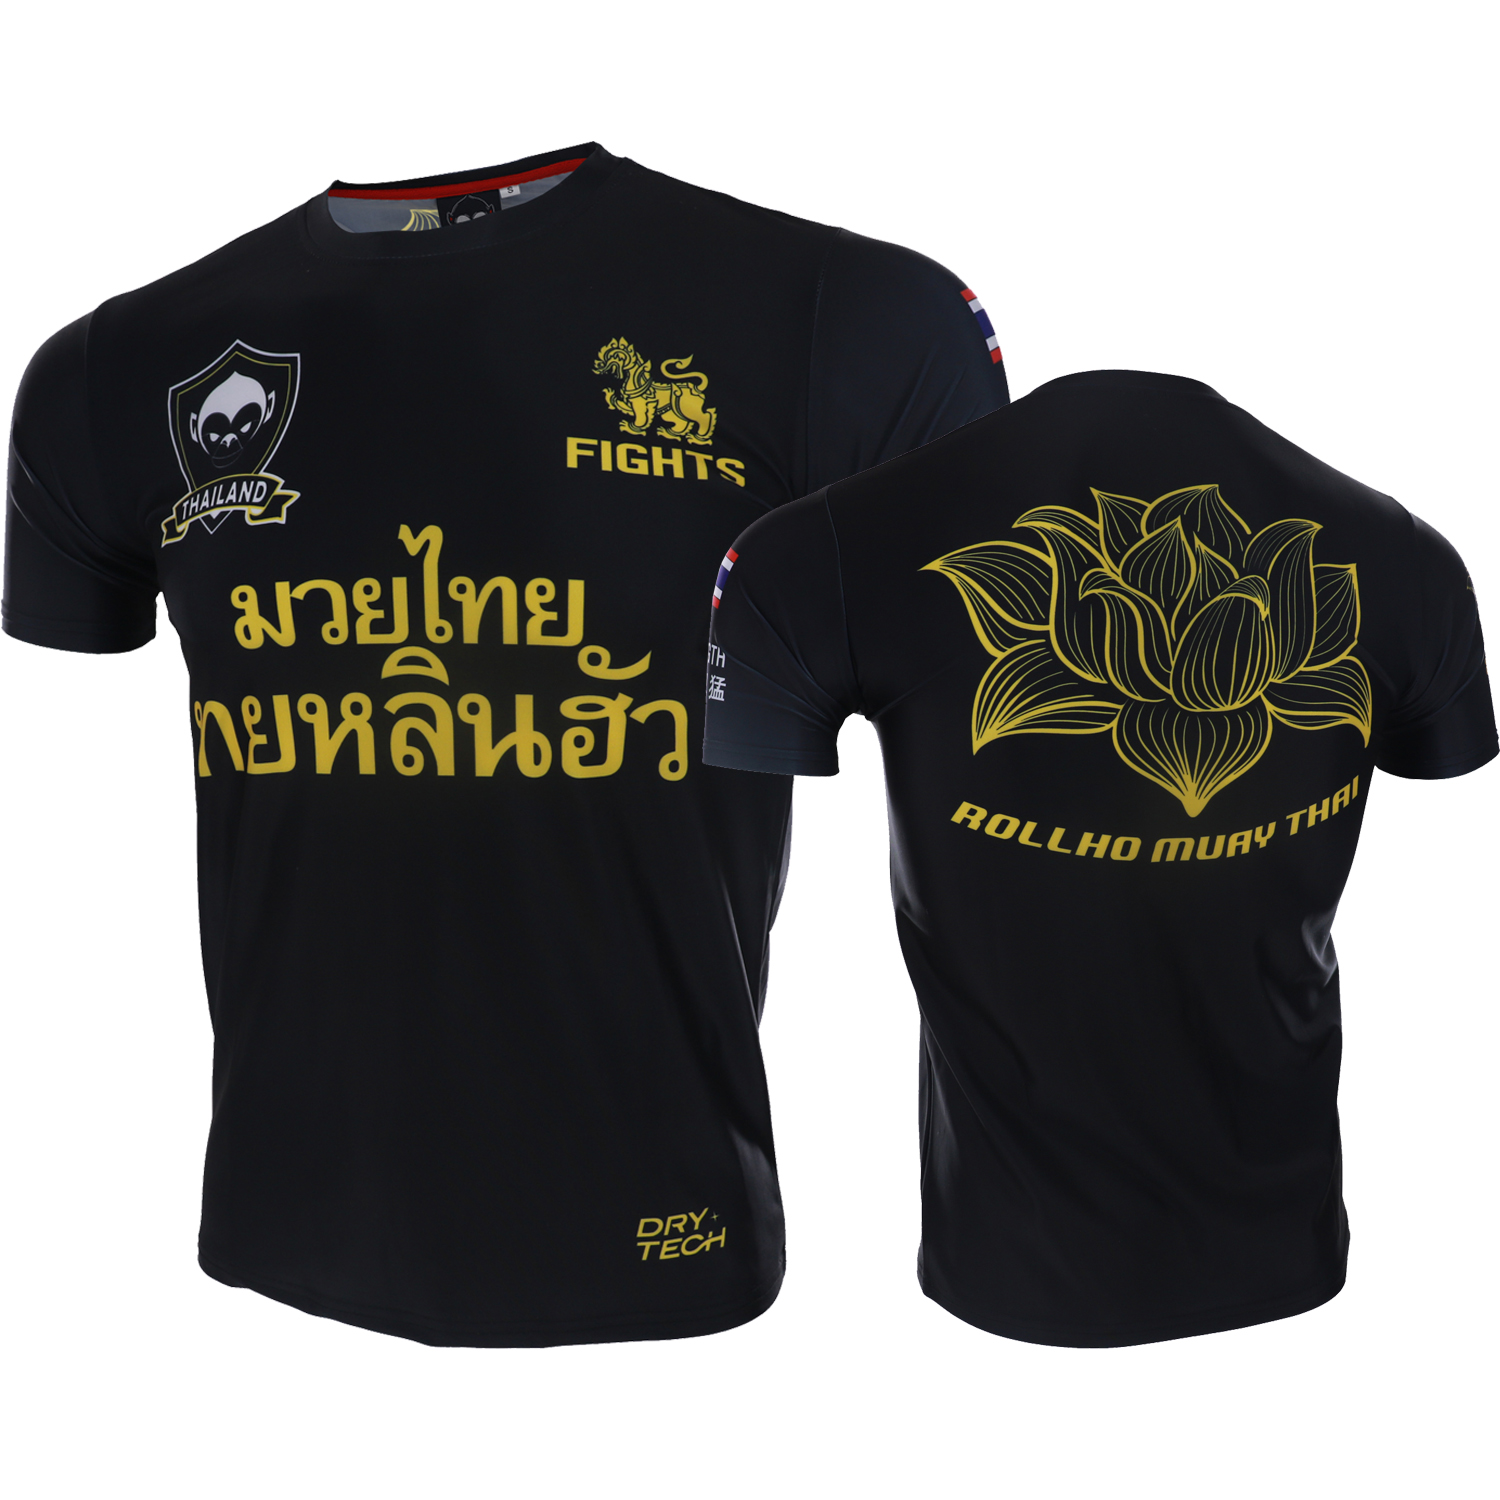 3D LOUTS Printed Rashguard Gym T Shirt Clothing Compression Shirt Quick Dry Muay Thai Breathable Boxing Jerseys Fight MMA Jersey